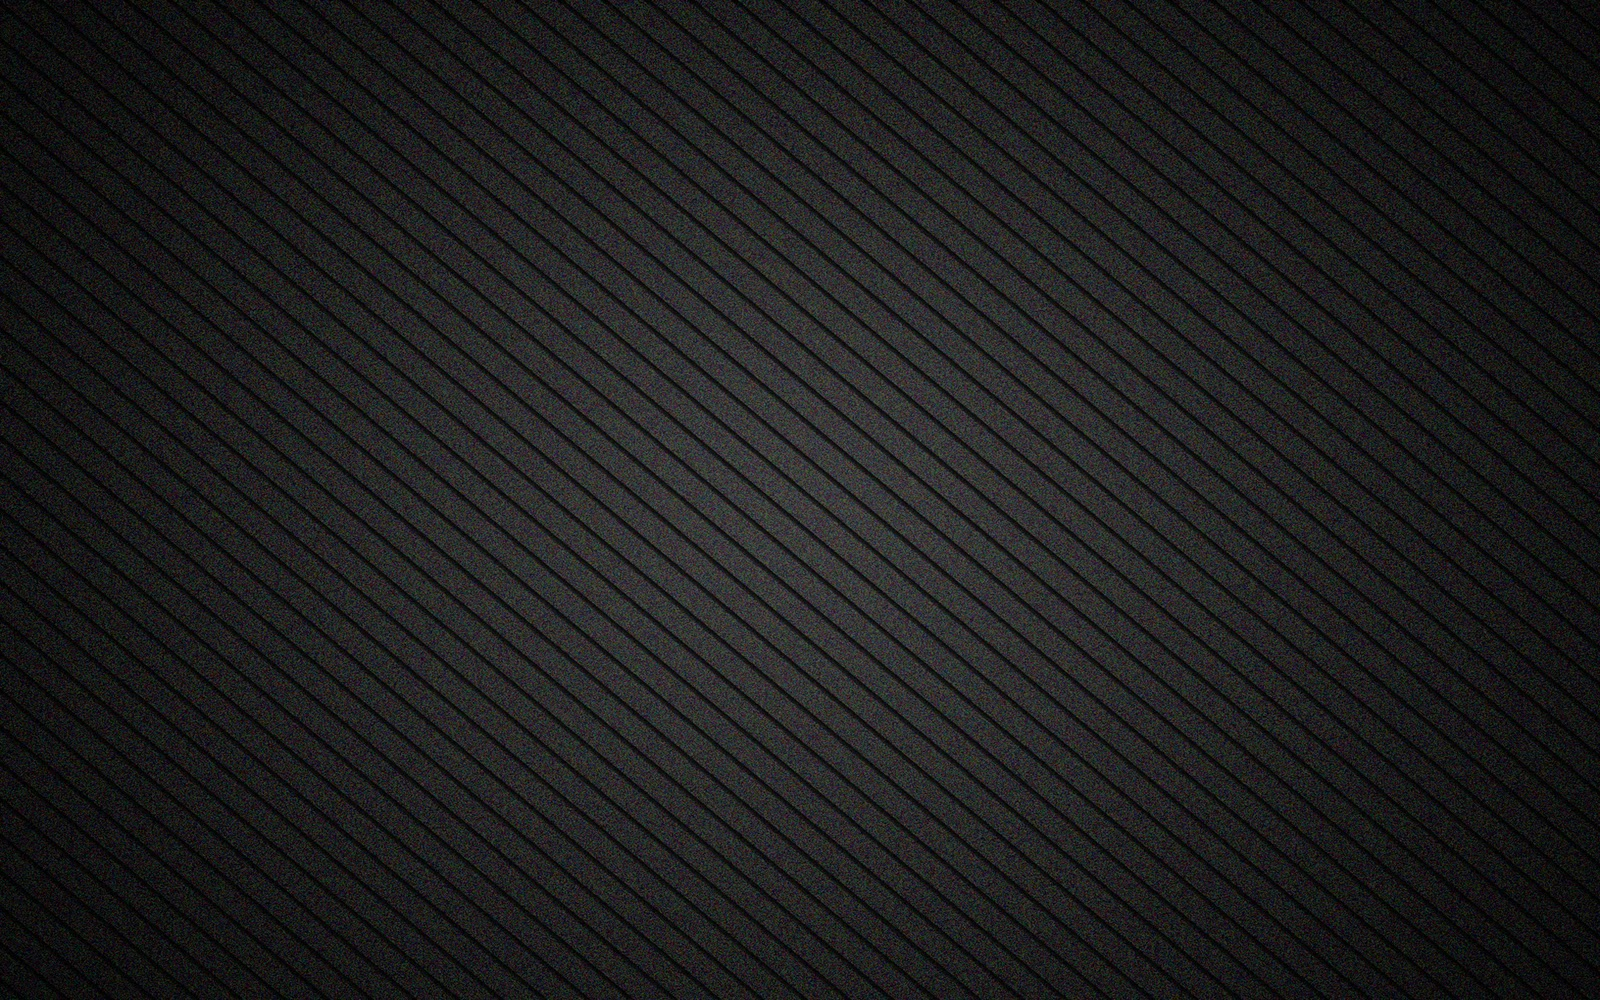 wood-background-black-and-grey-lines-everywhere-with-a-logo-584213 ...